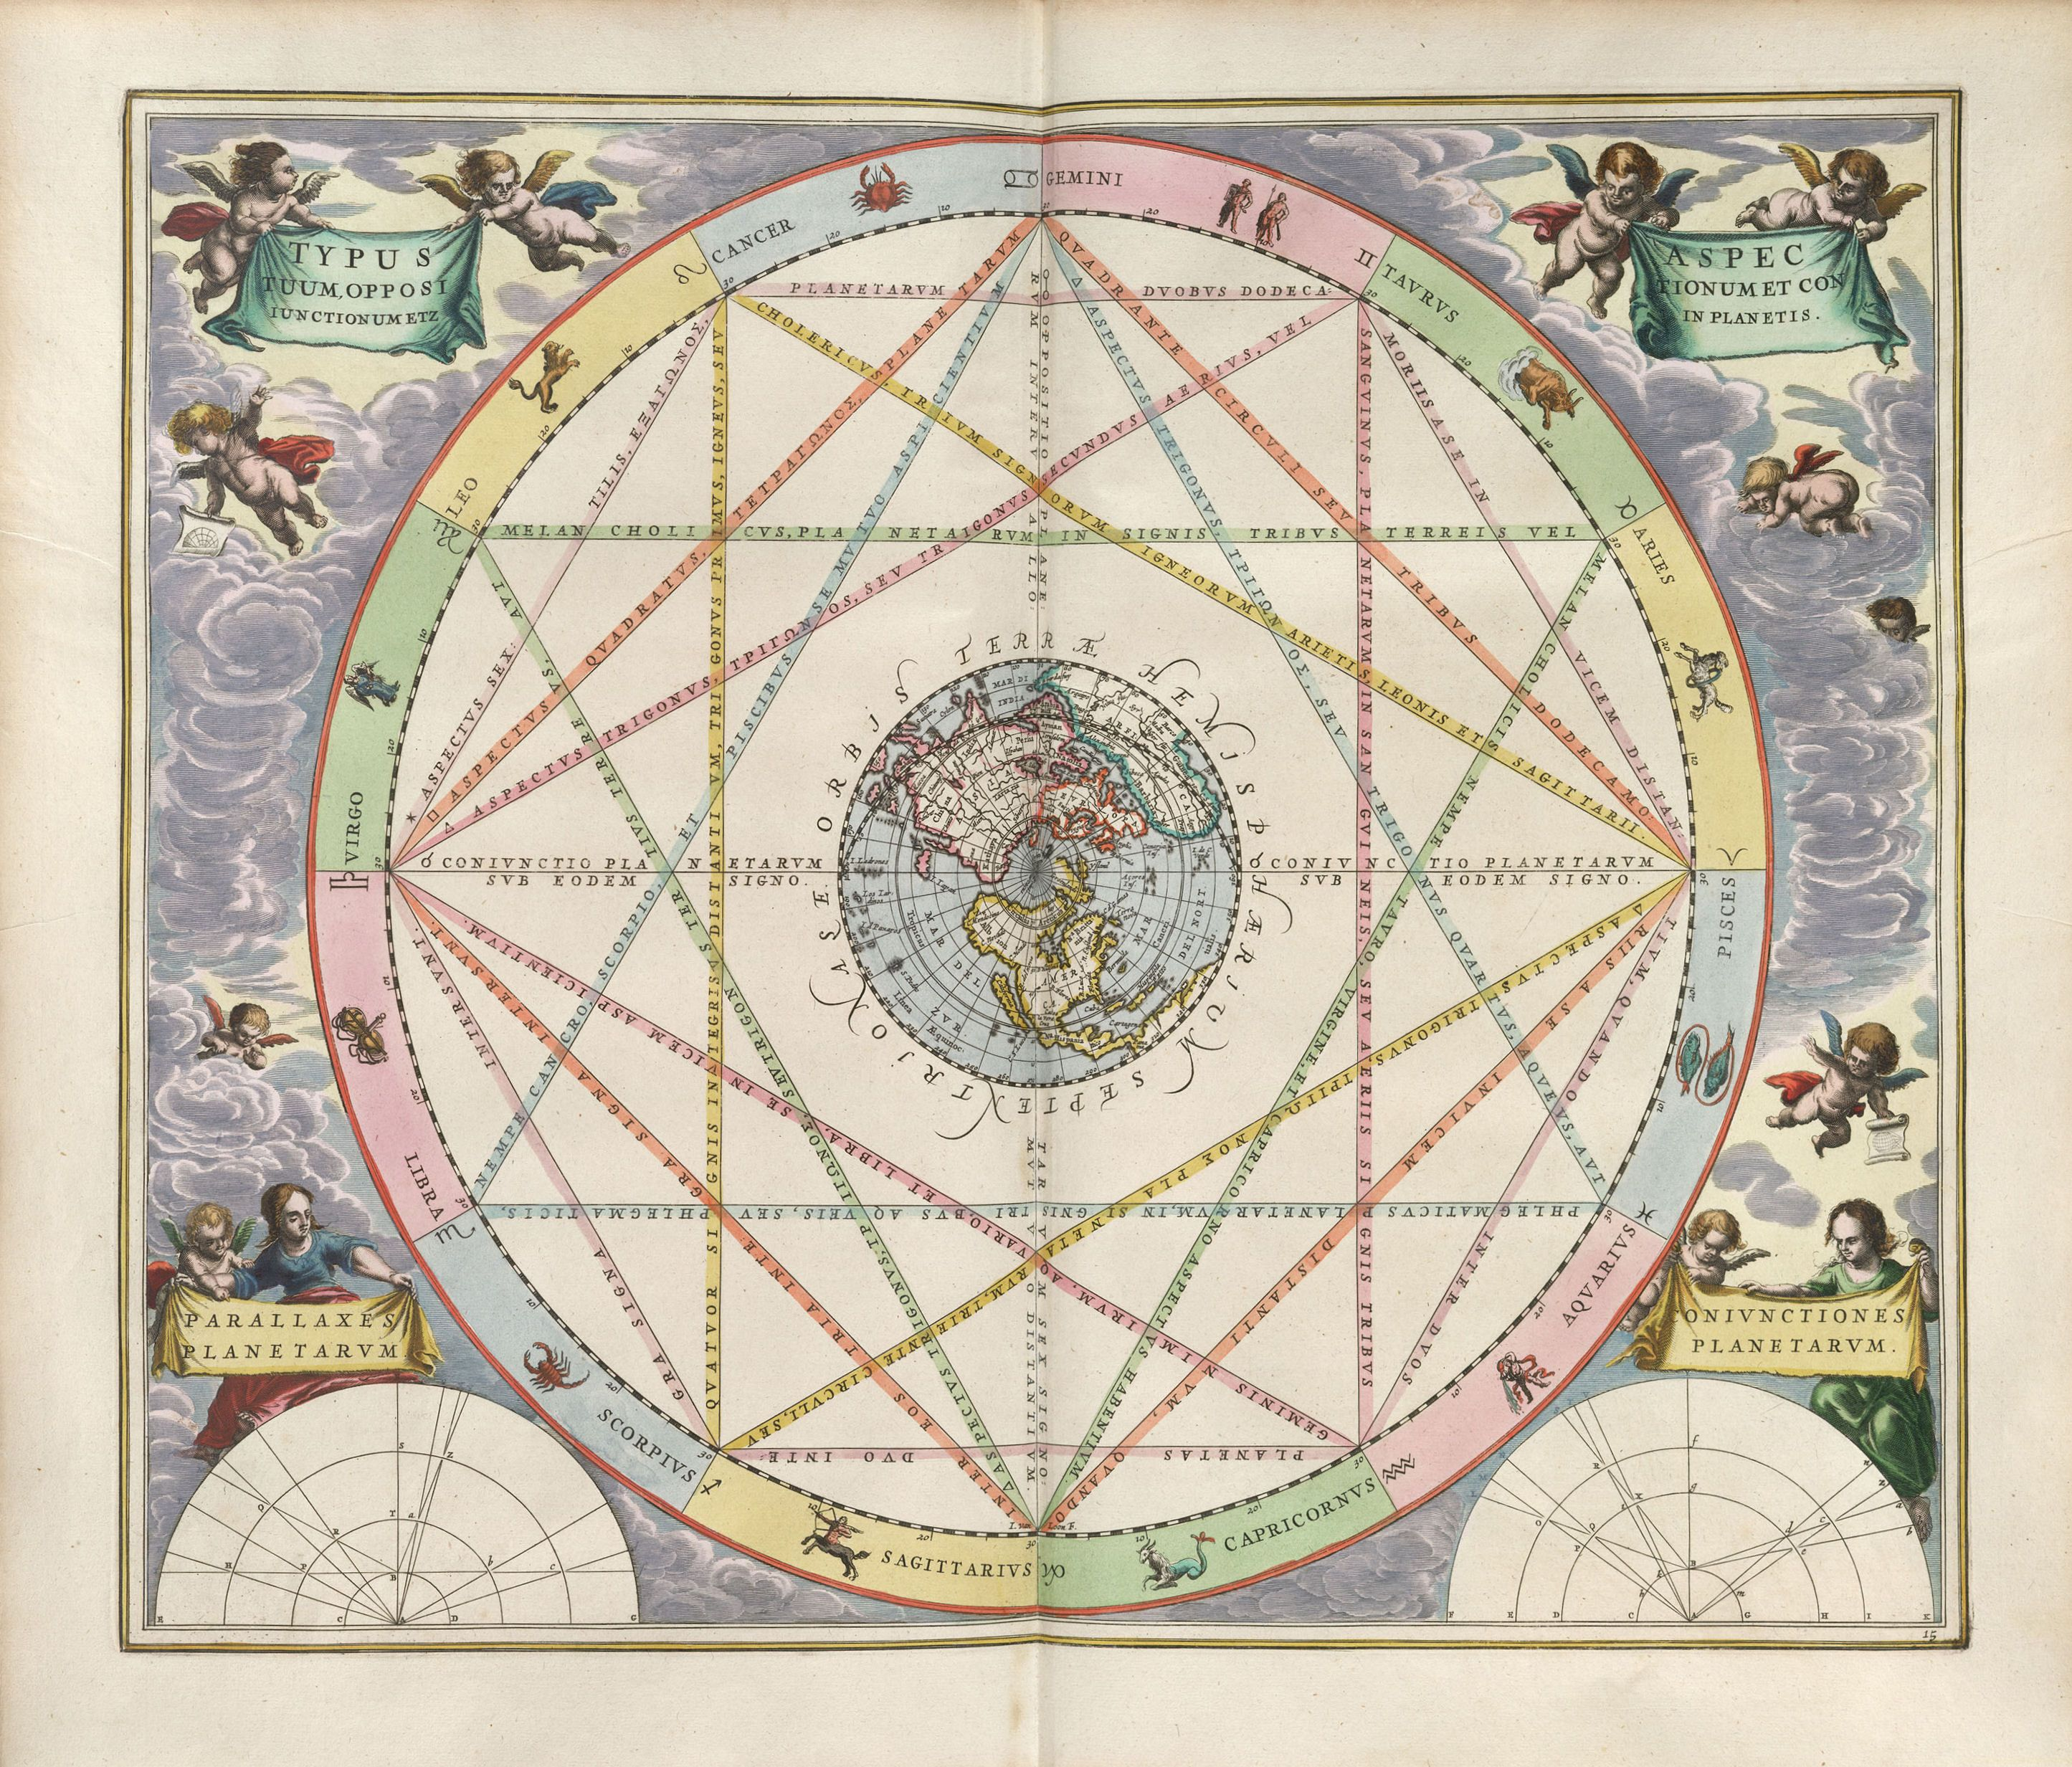 Zodiac signs horoscope symbols astrology signs chart the zodiac signs horoscope symbols astrology signs chart the cellarius harmonia macrocosmica nvjuhfo Image collections